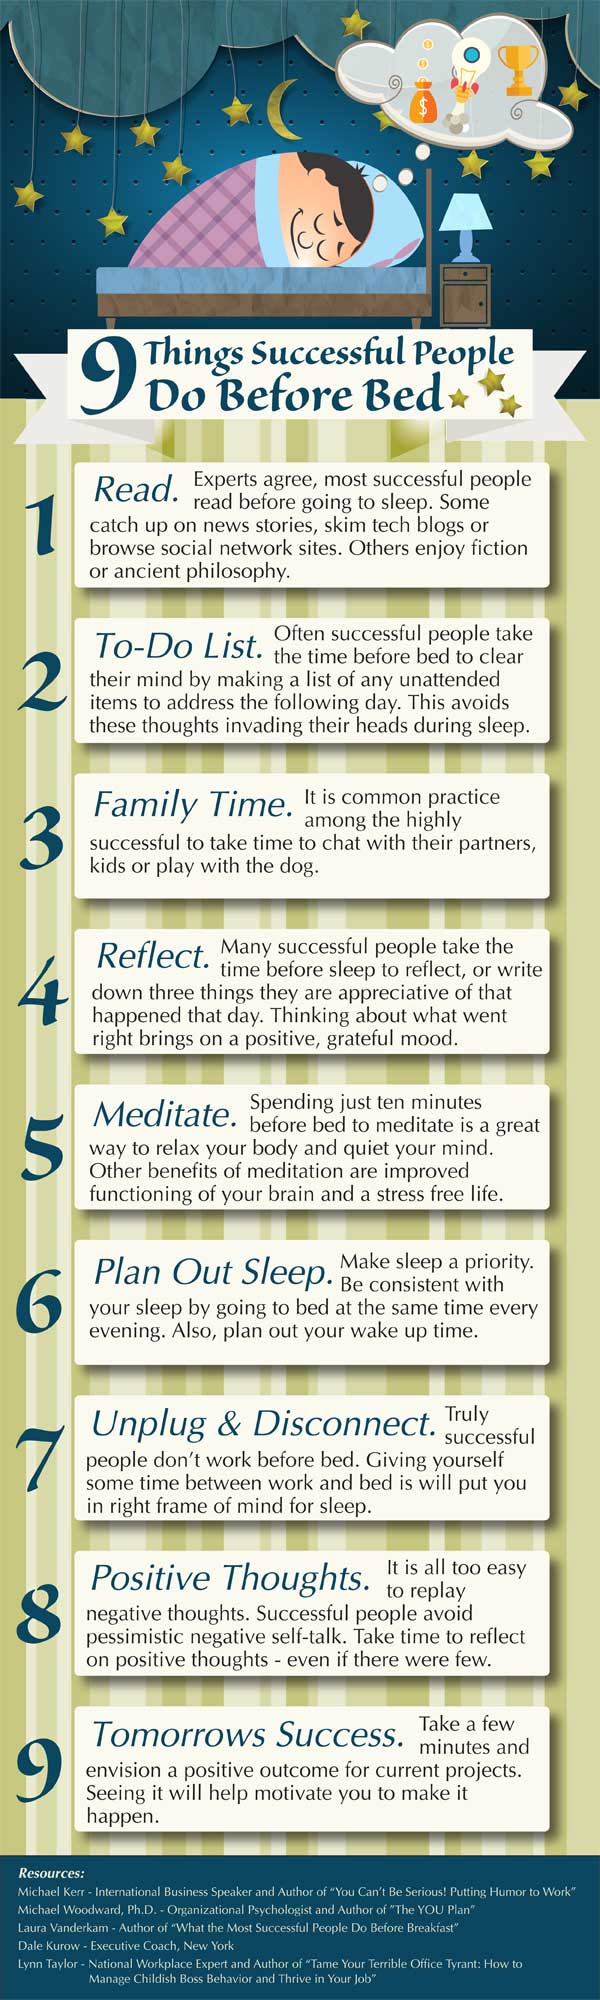 9 Things Successfuly People Do Before Bed